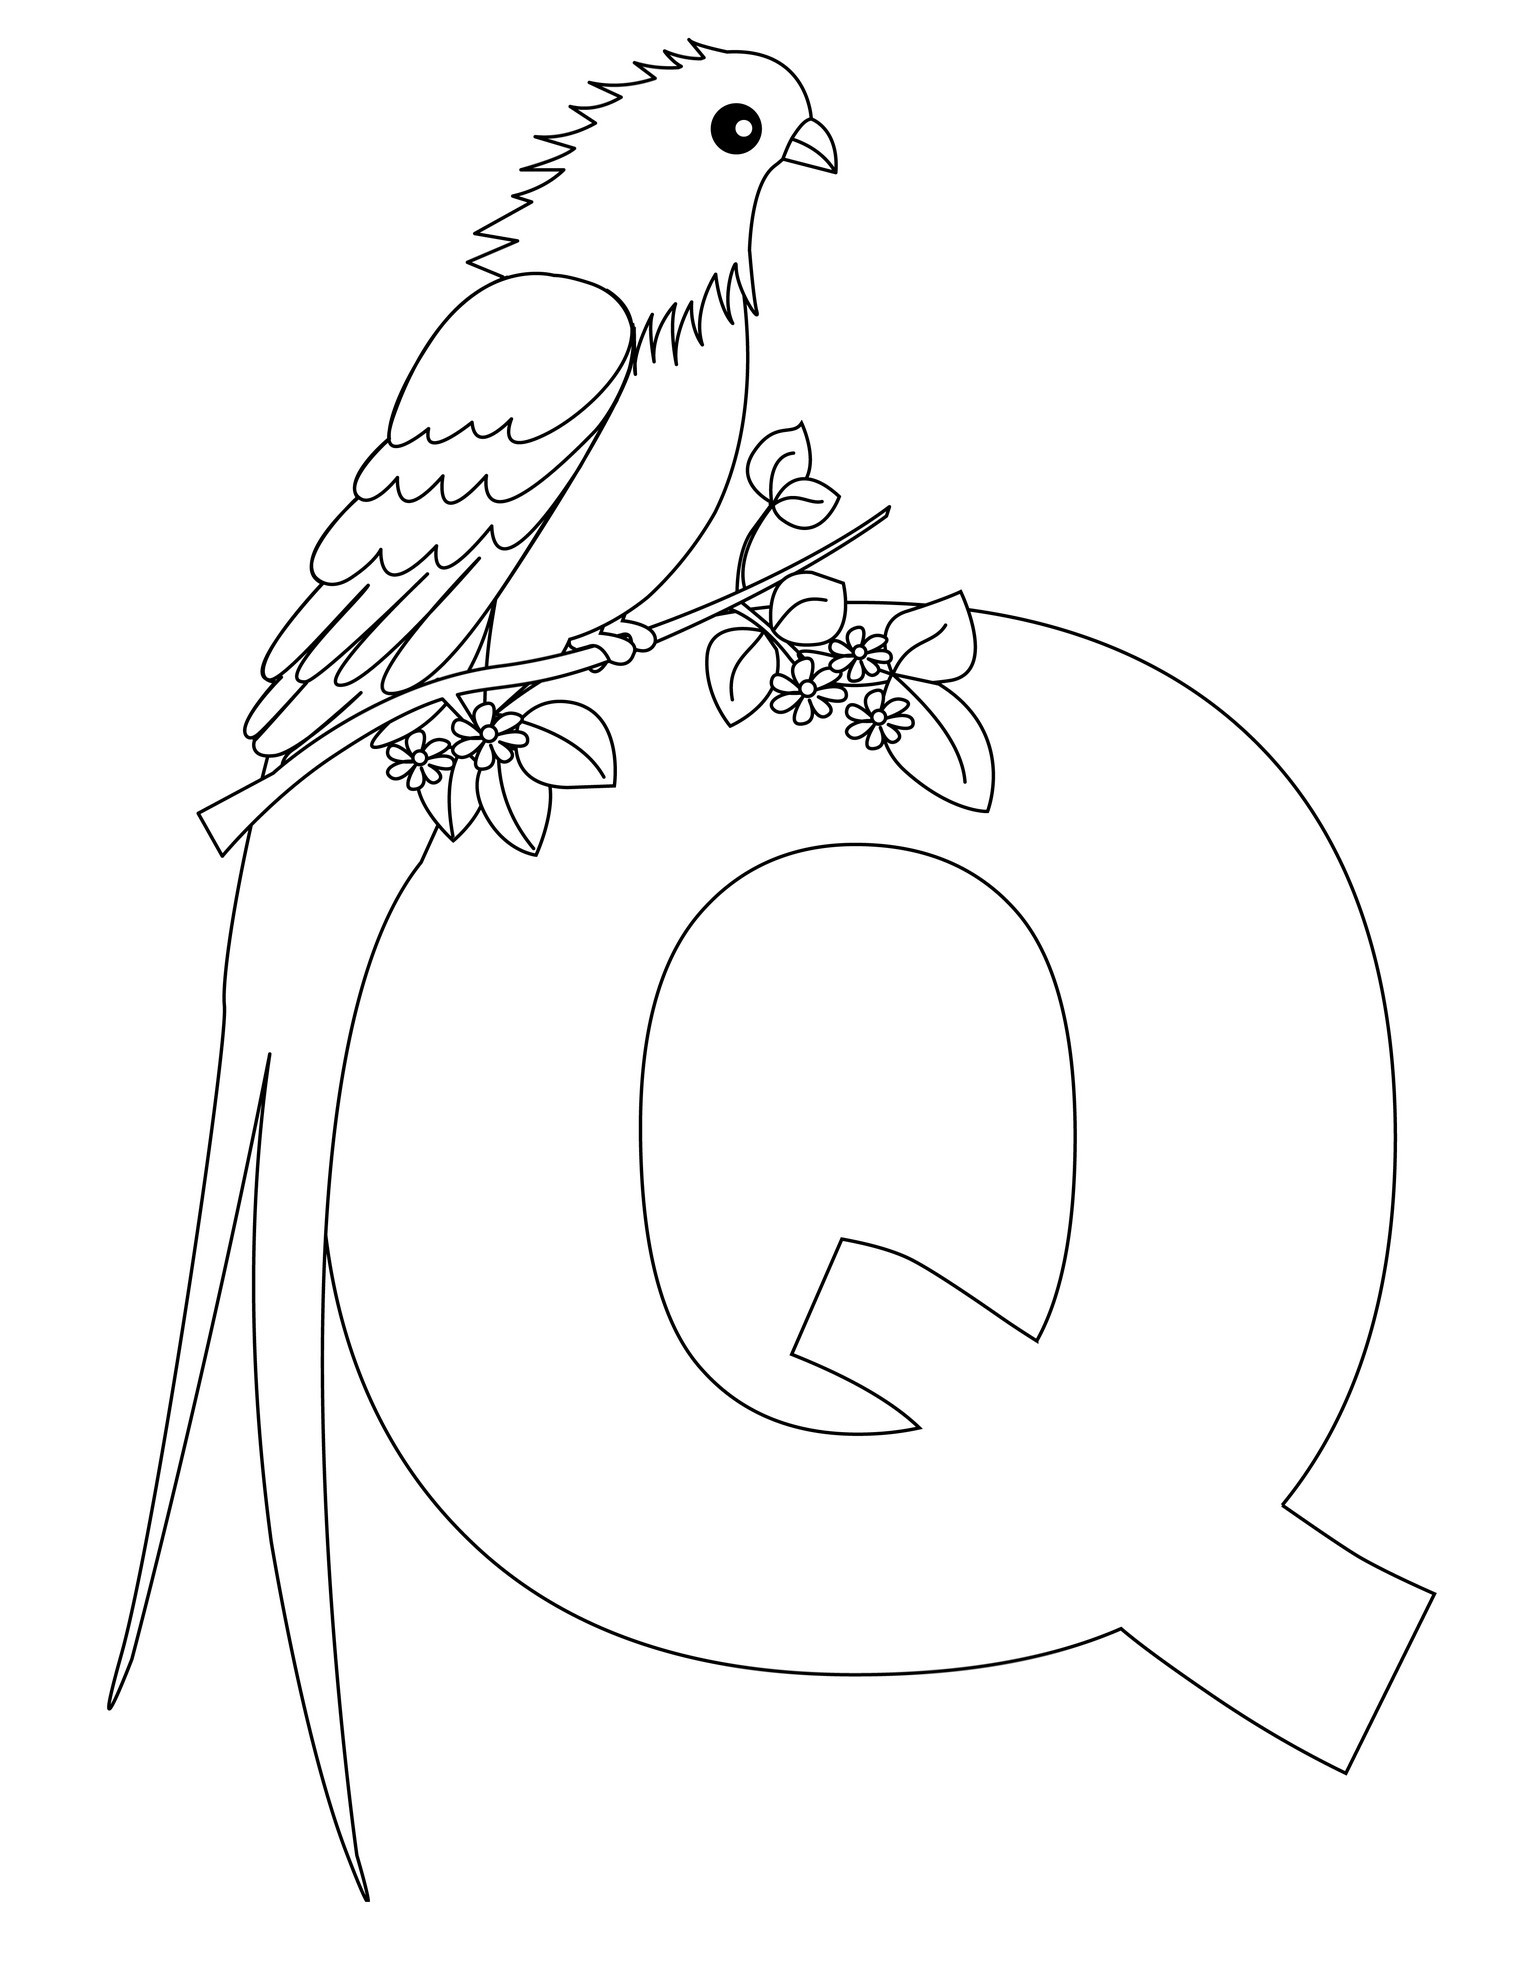 q letter coloring pages - photo #21